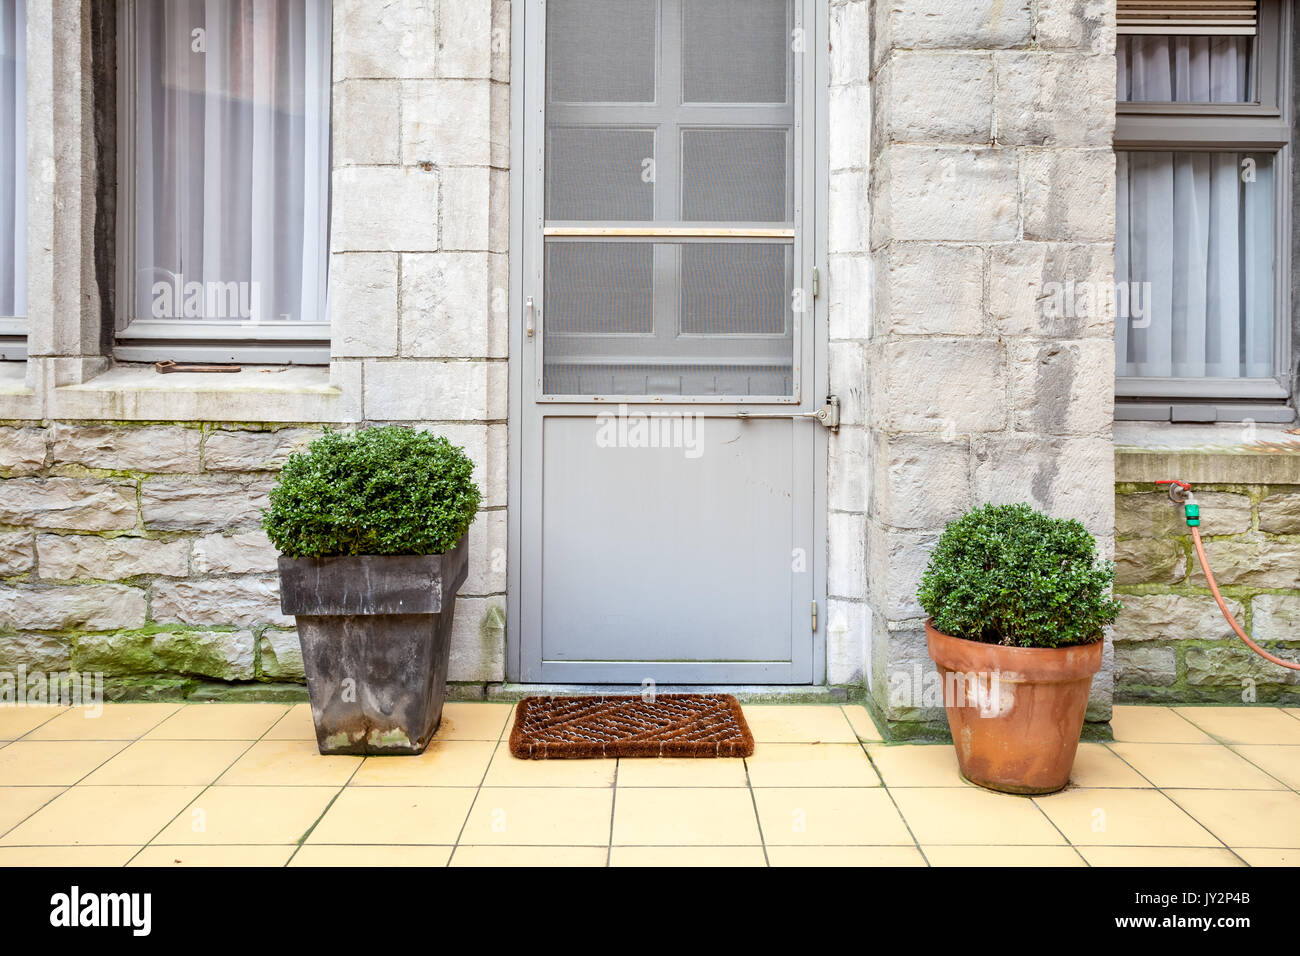 On the inner courtyard there are two flower pots with plants next to ...